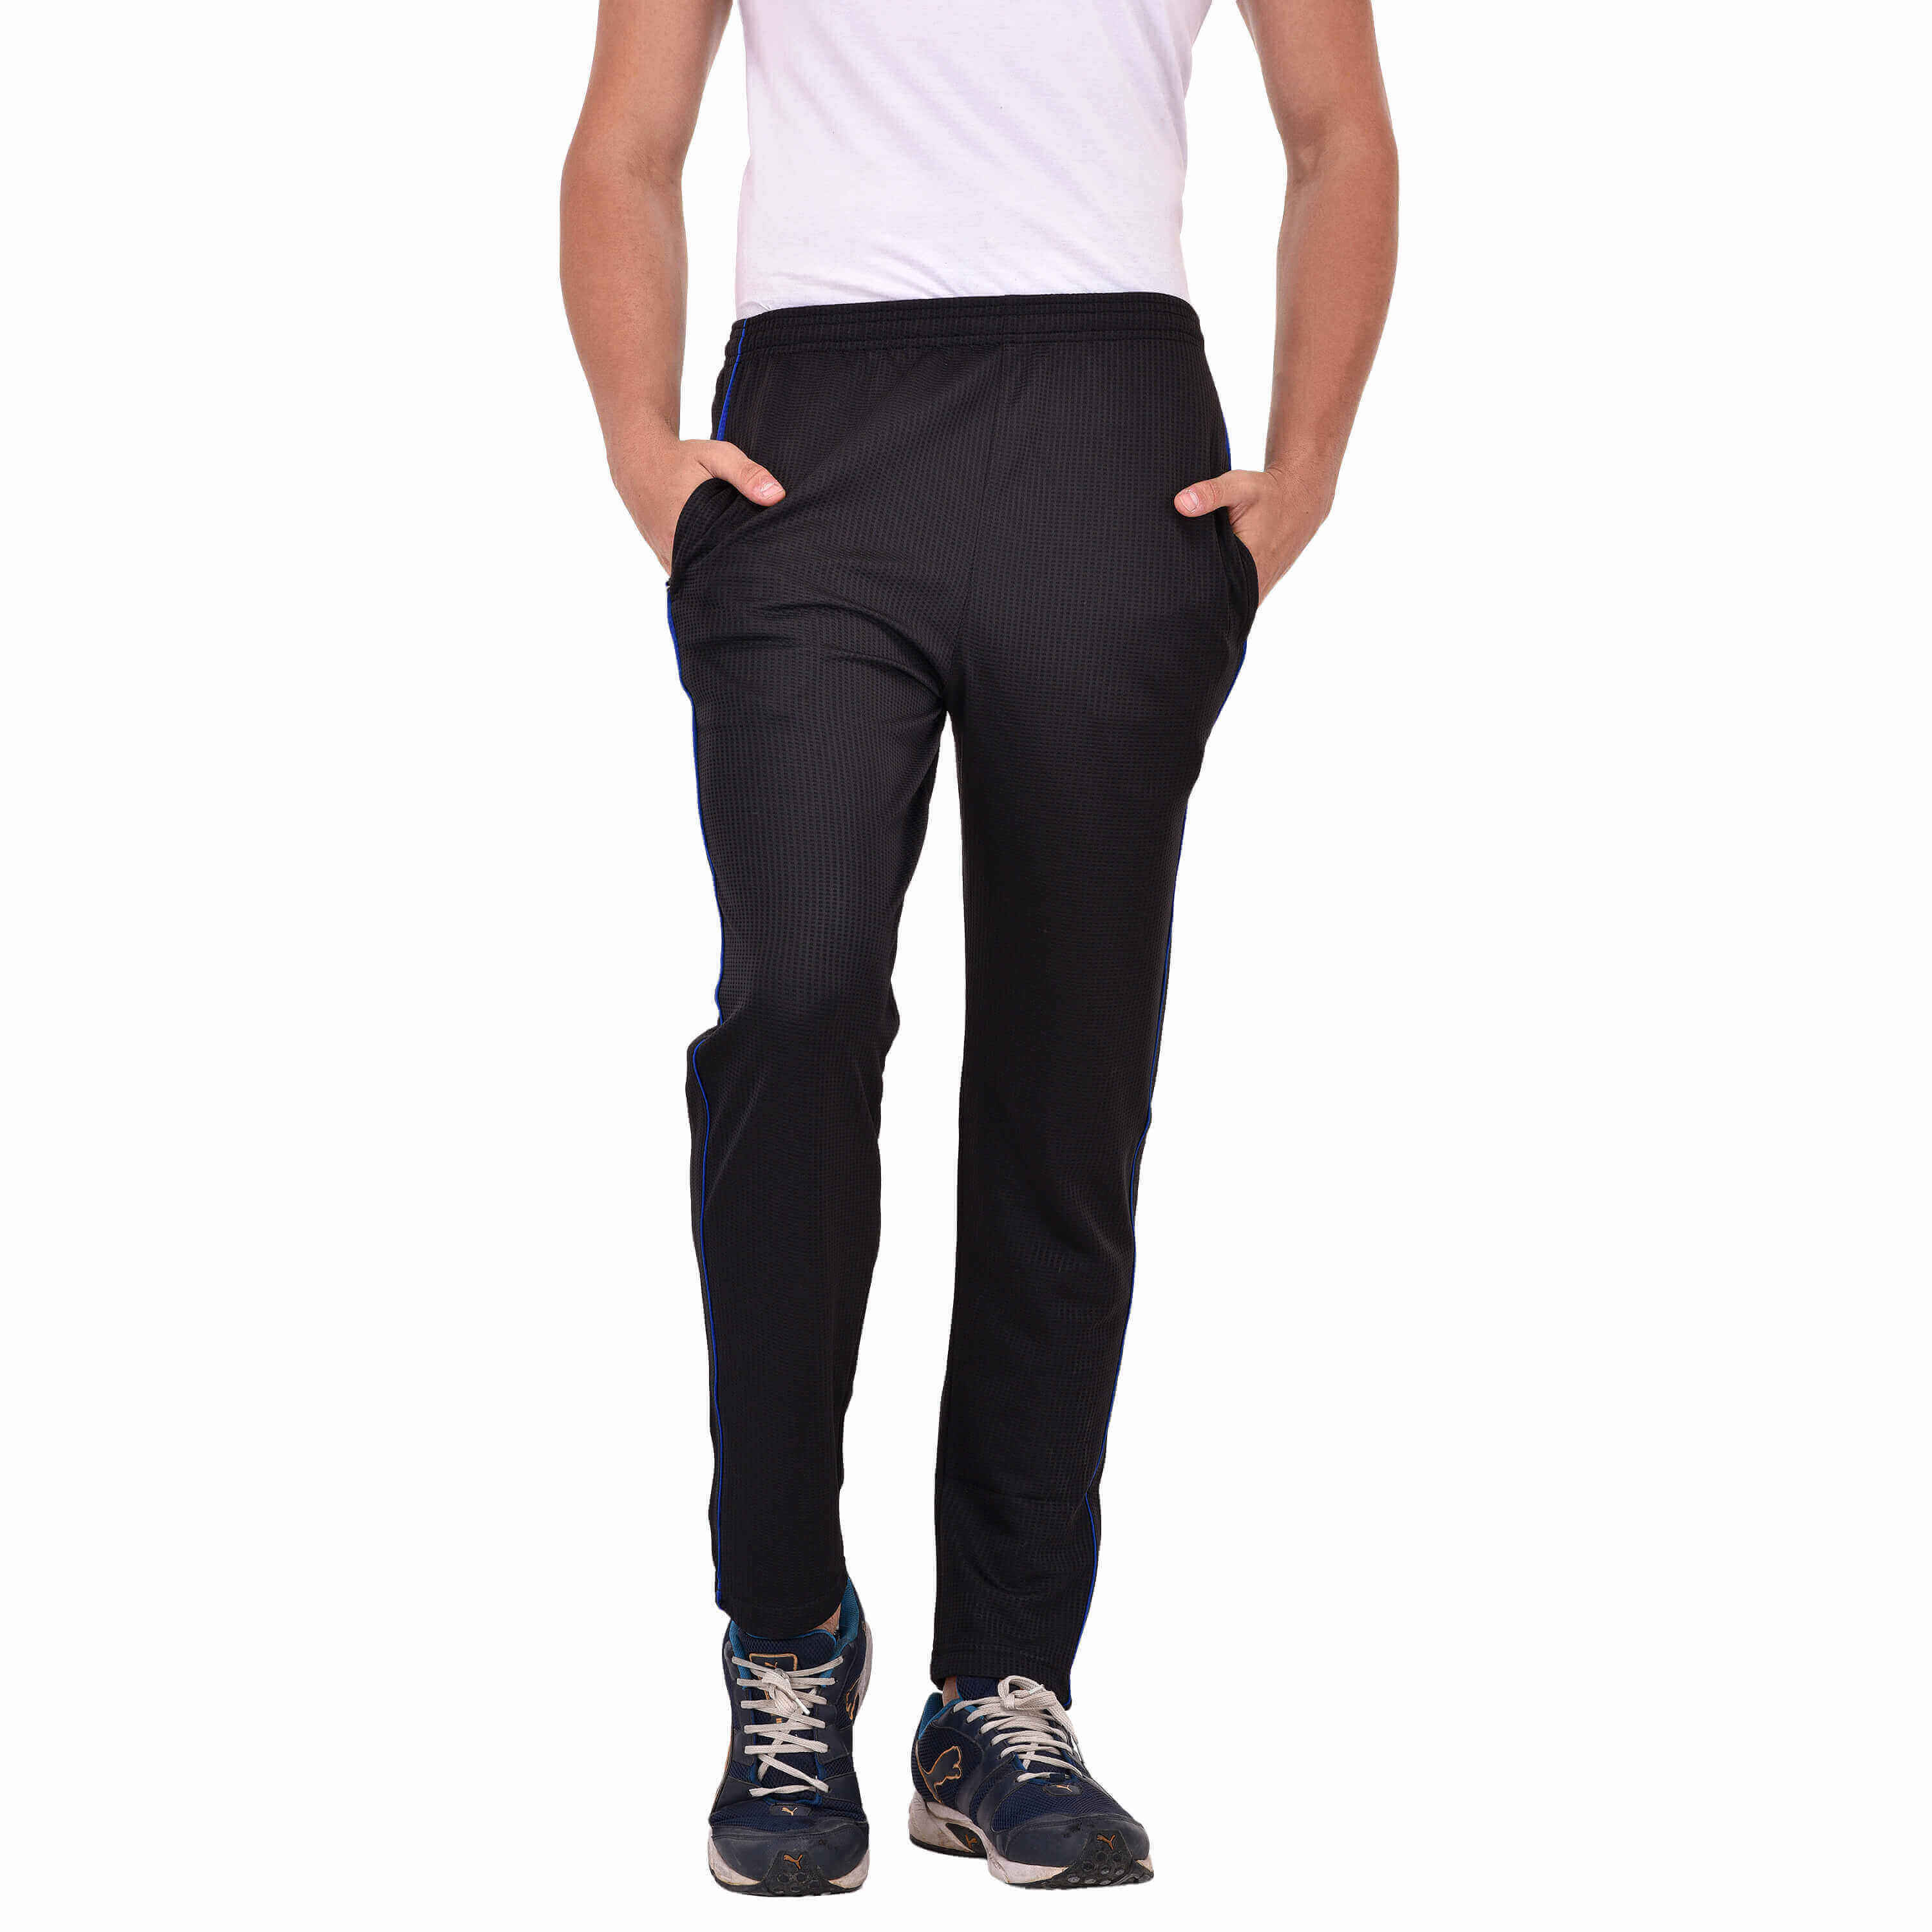 Mens Tracksuit Bottoms Manufacturers in Peru